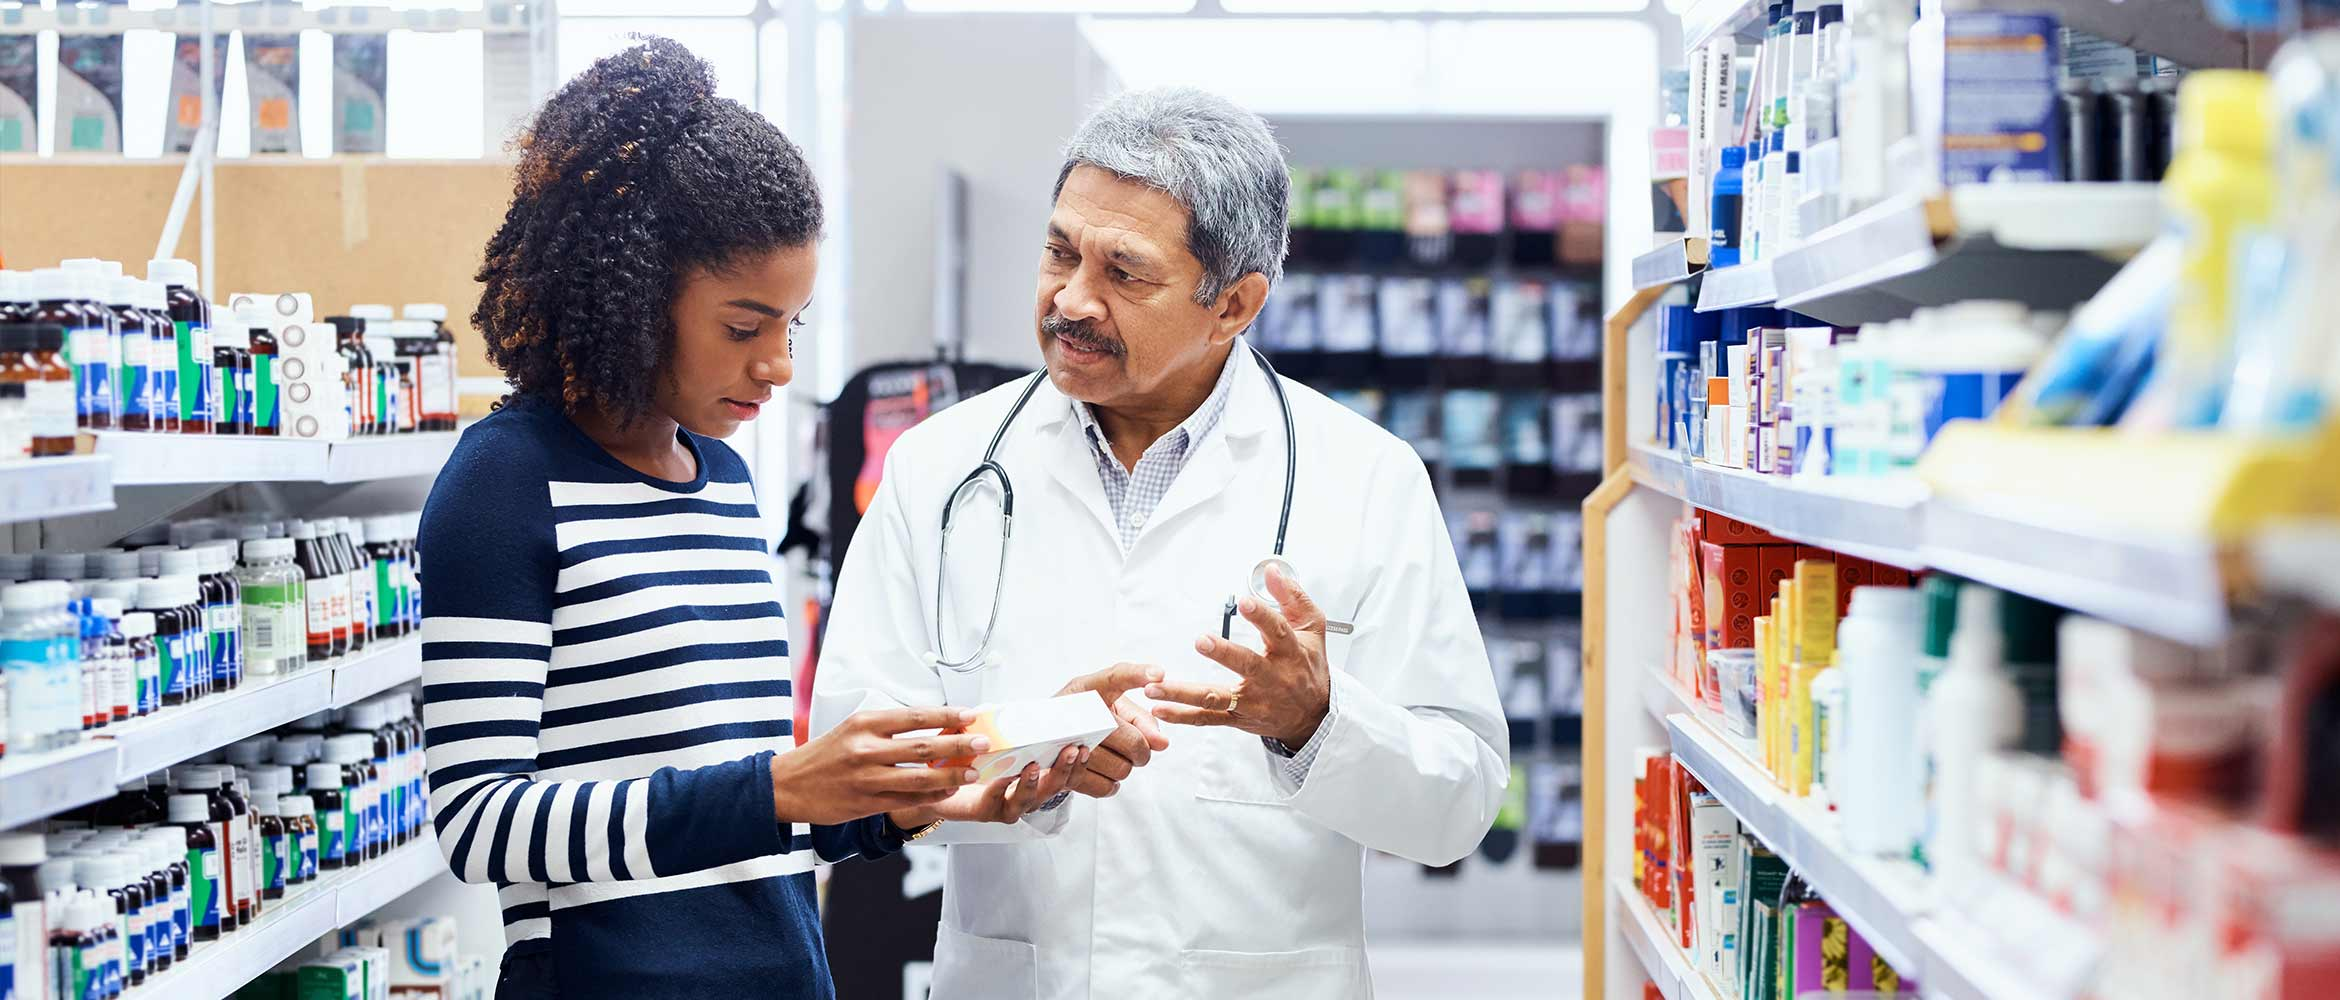 a pharmacist offers help to a woman in the aisle of a pharmacy